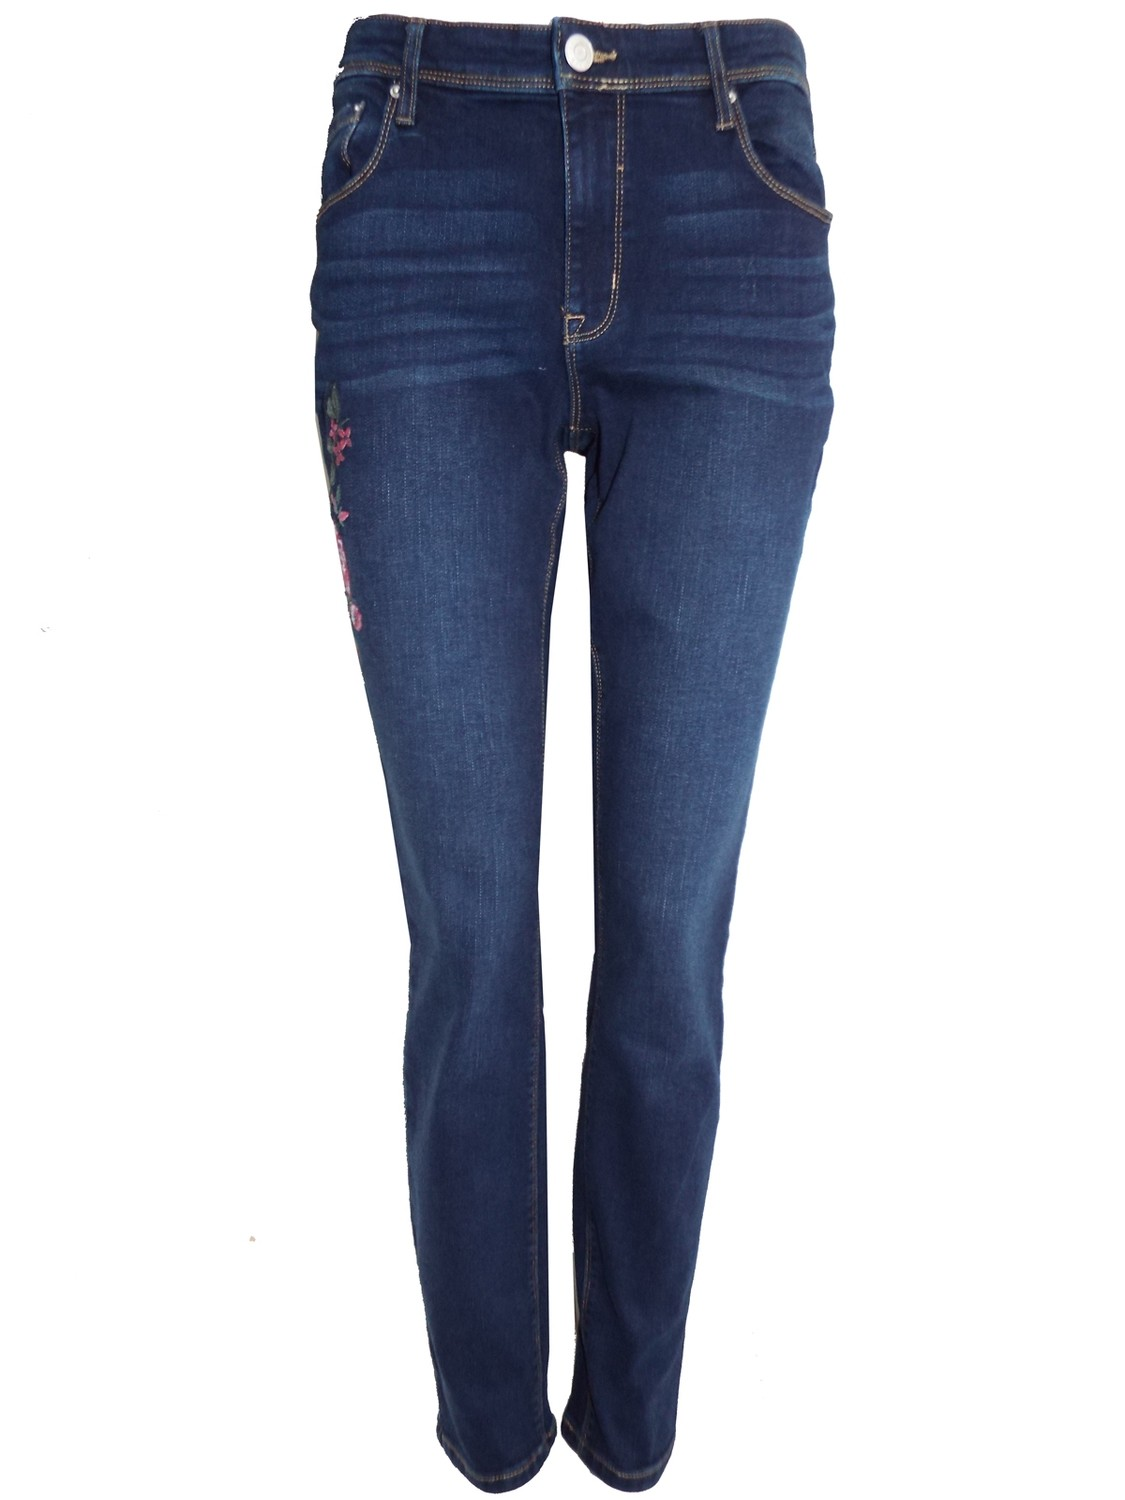 Embroidered Slim Leg Jeans by R Jeans by Gloria Vanderbuilt